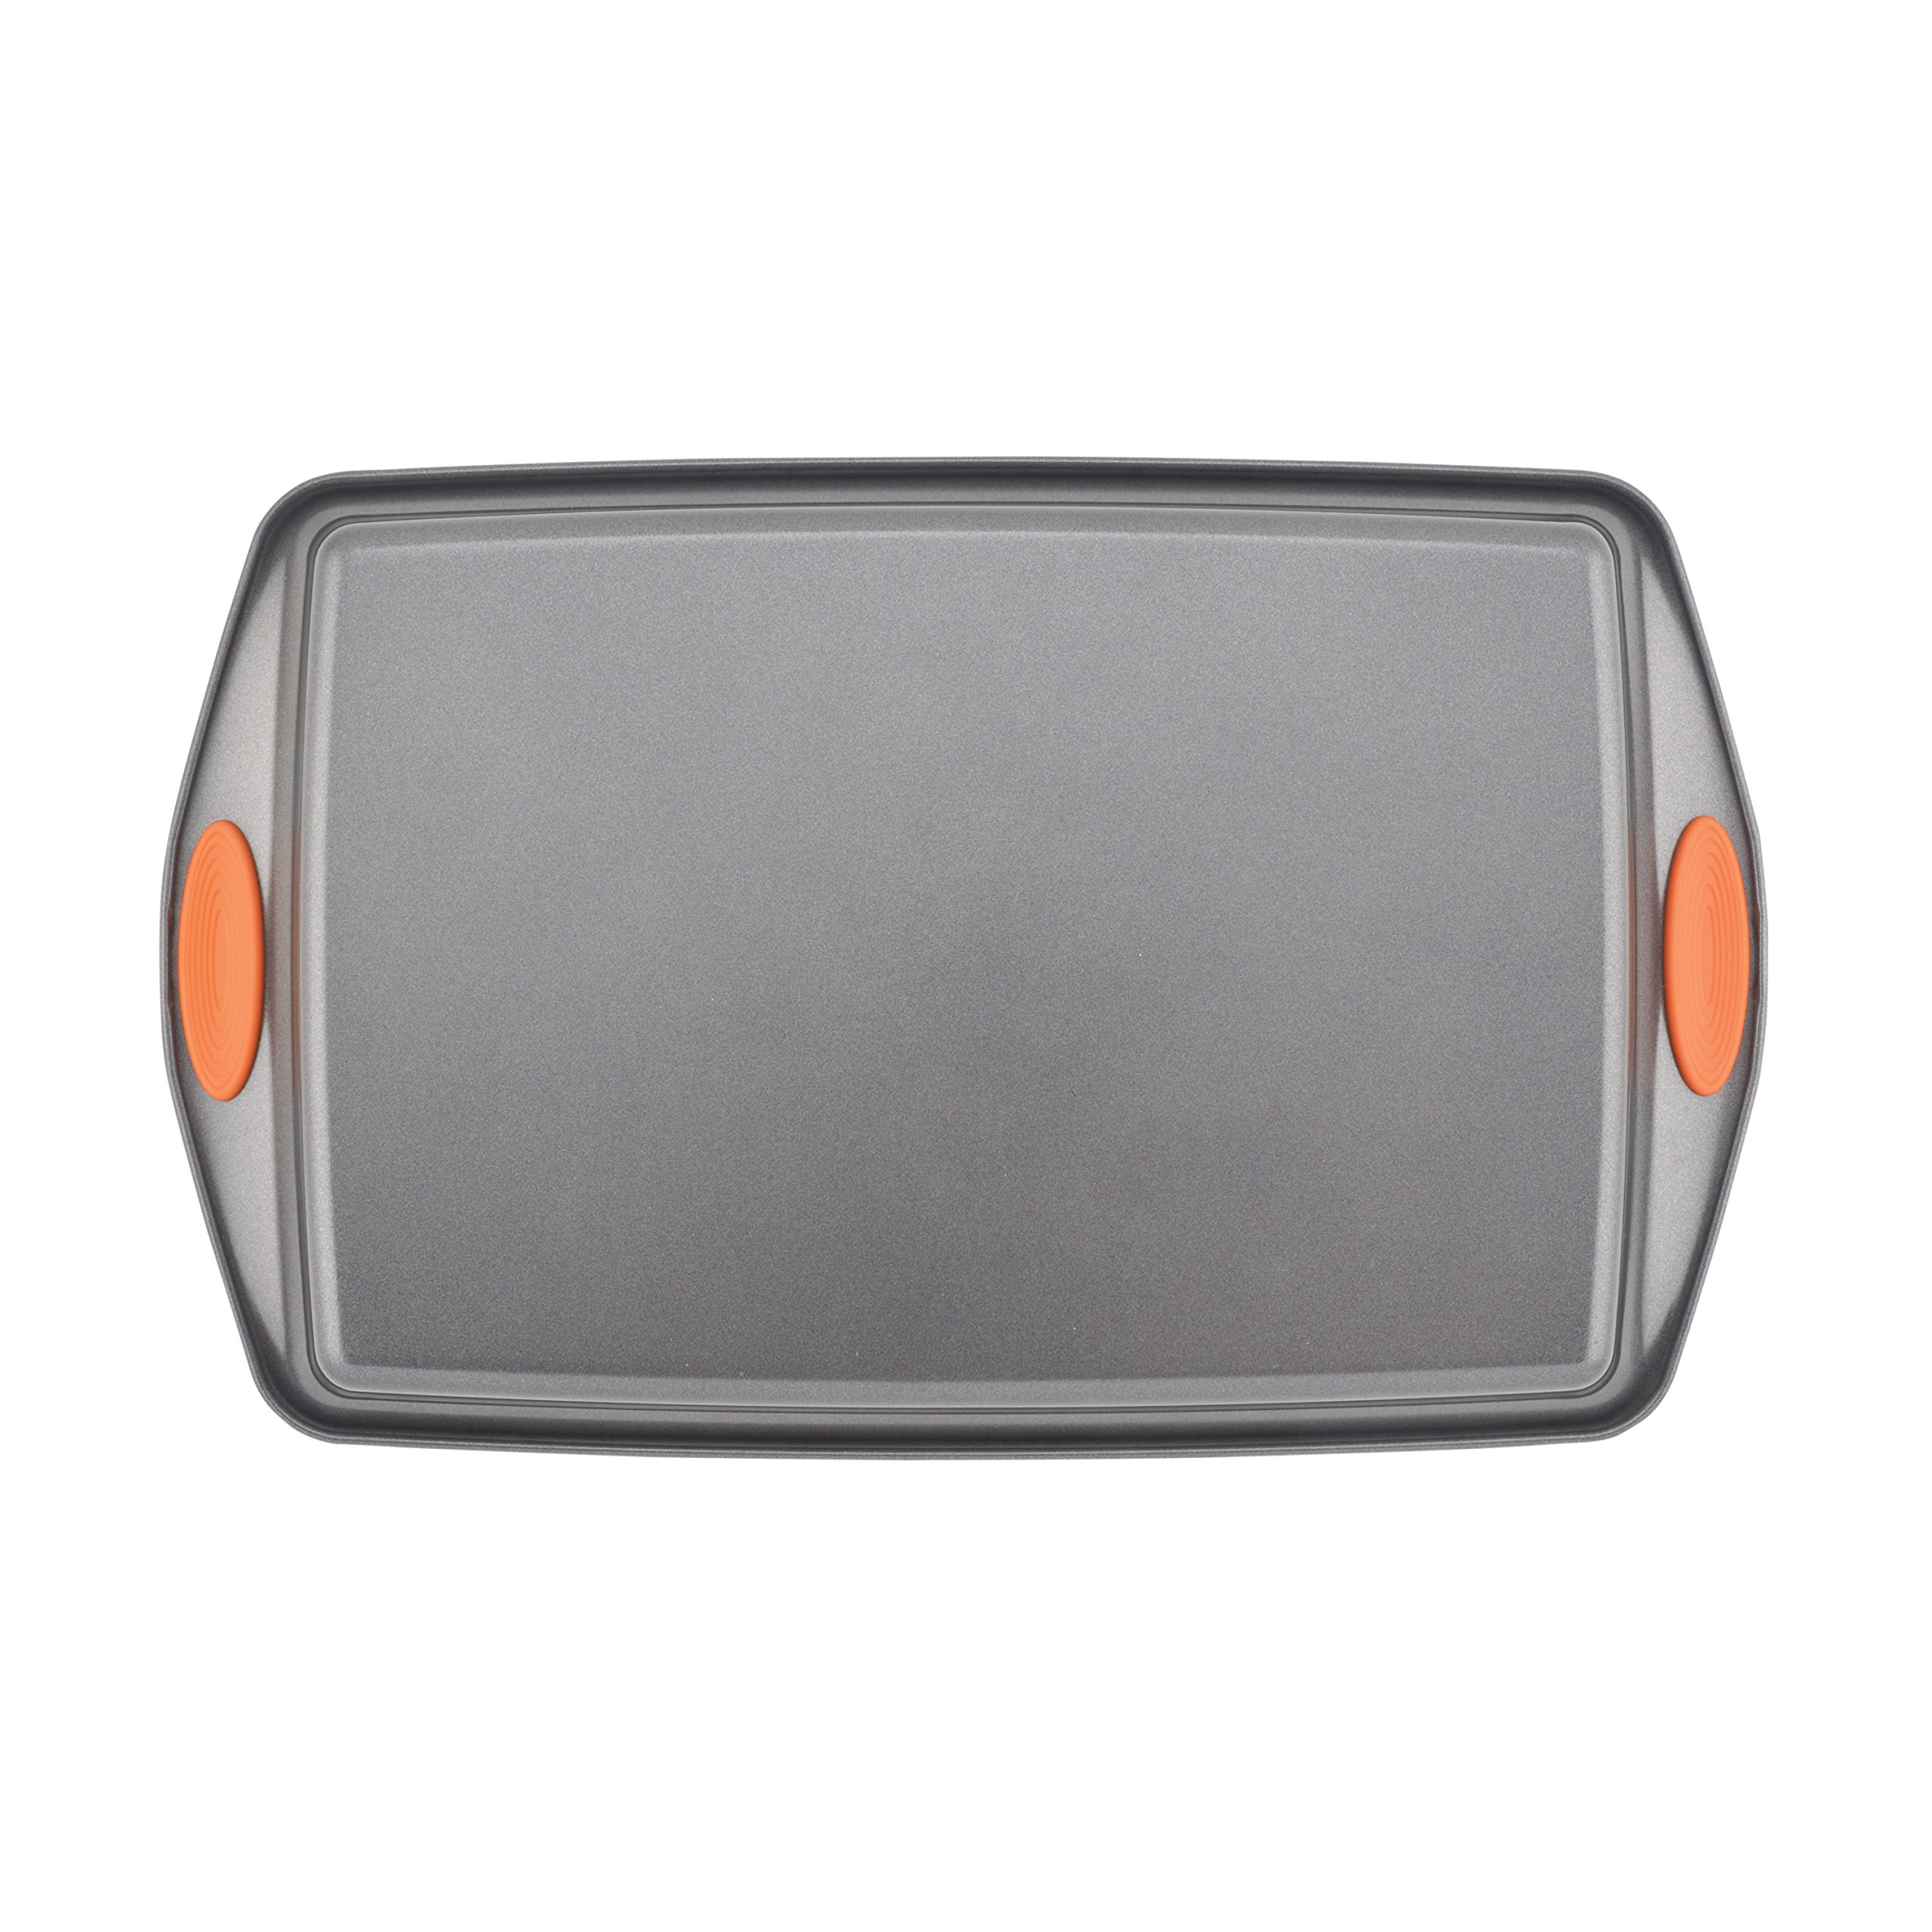 Rachael Ray Yum-o! Nonstick Bakeware 3-Piece Oven Lovin' Cookie Pan Set, Gray with Orange Silicone Grips by Rachael Ray (Image #6)